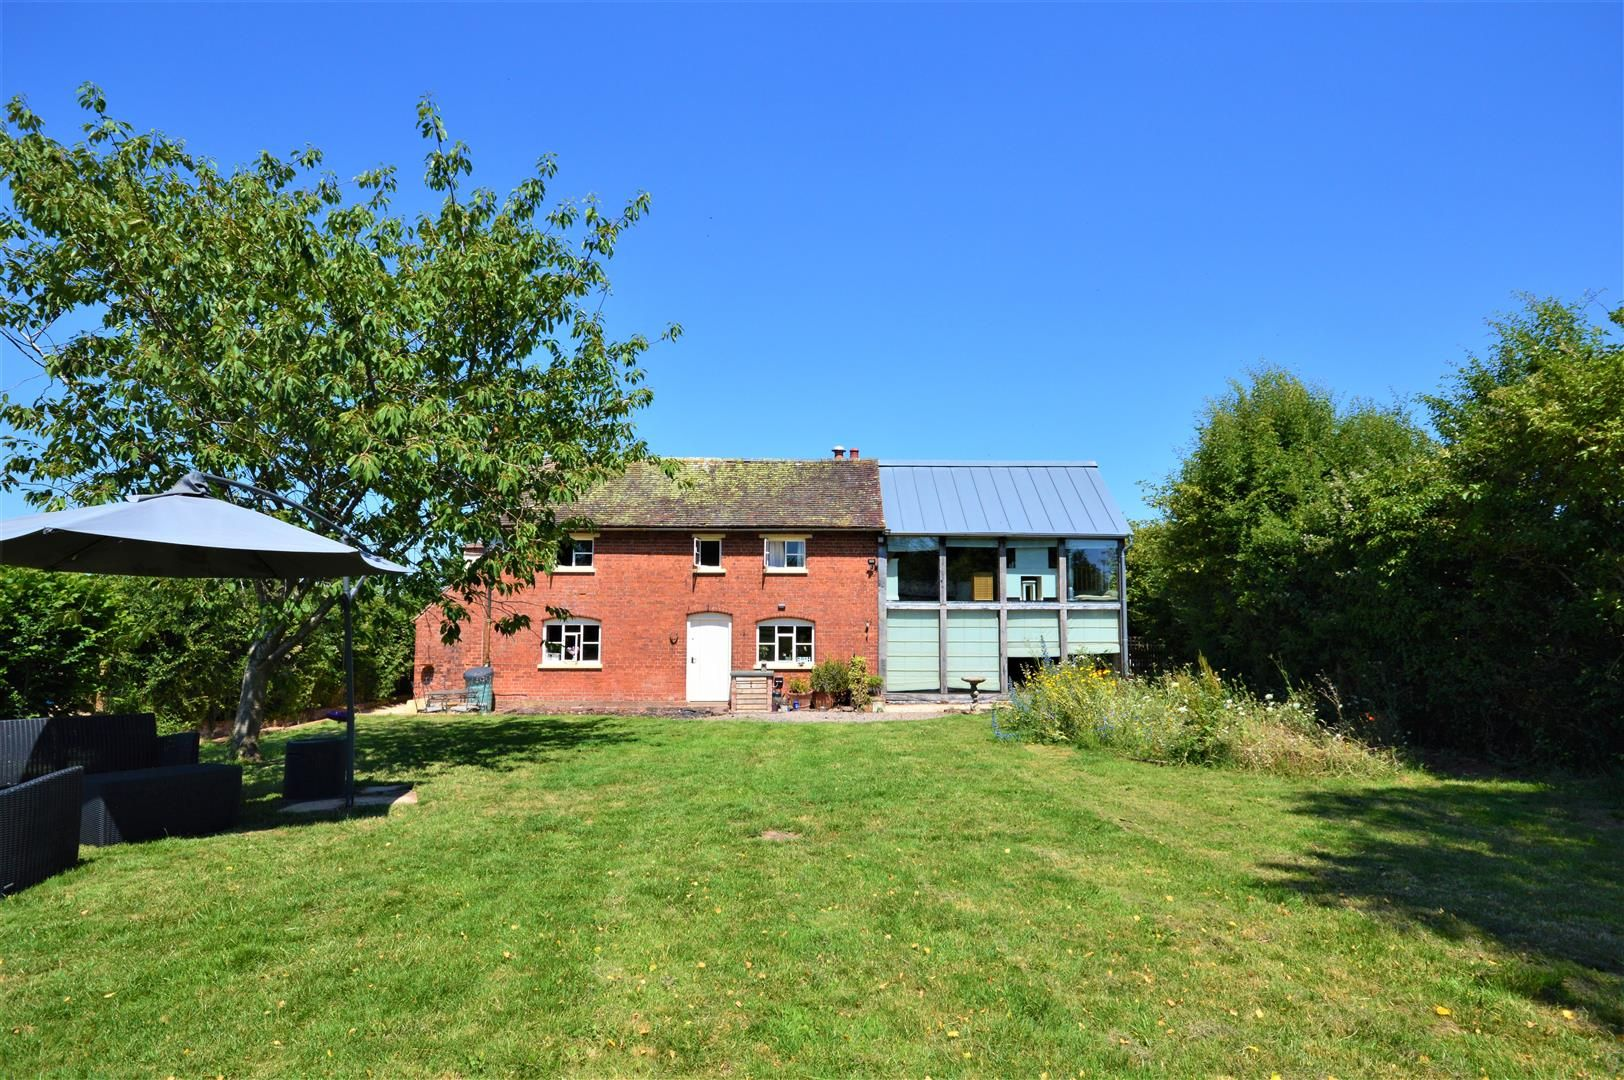 3 bed detached for sale in Canon Frome, HR8